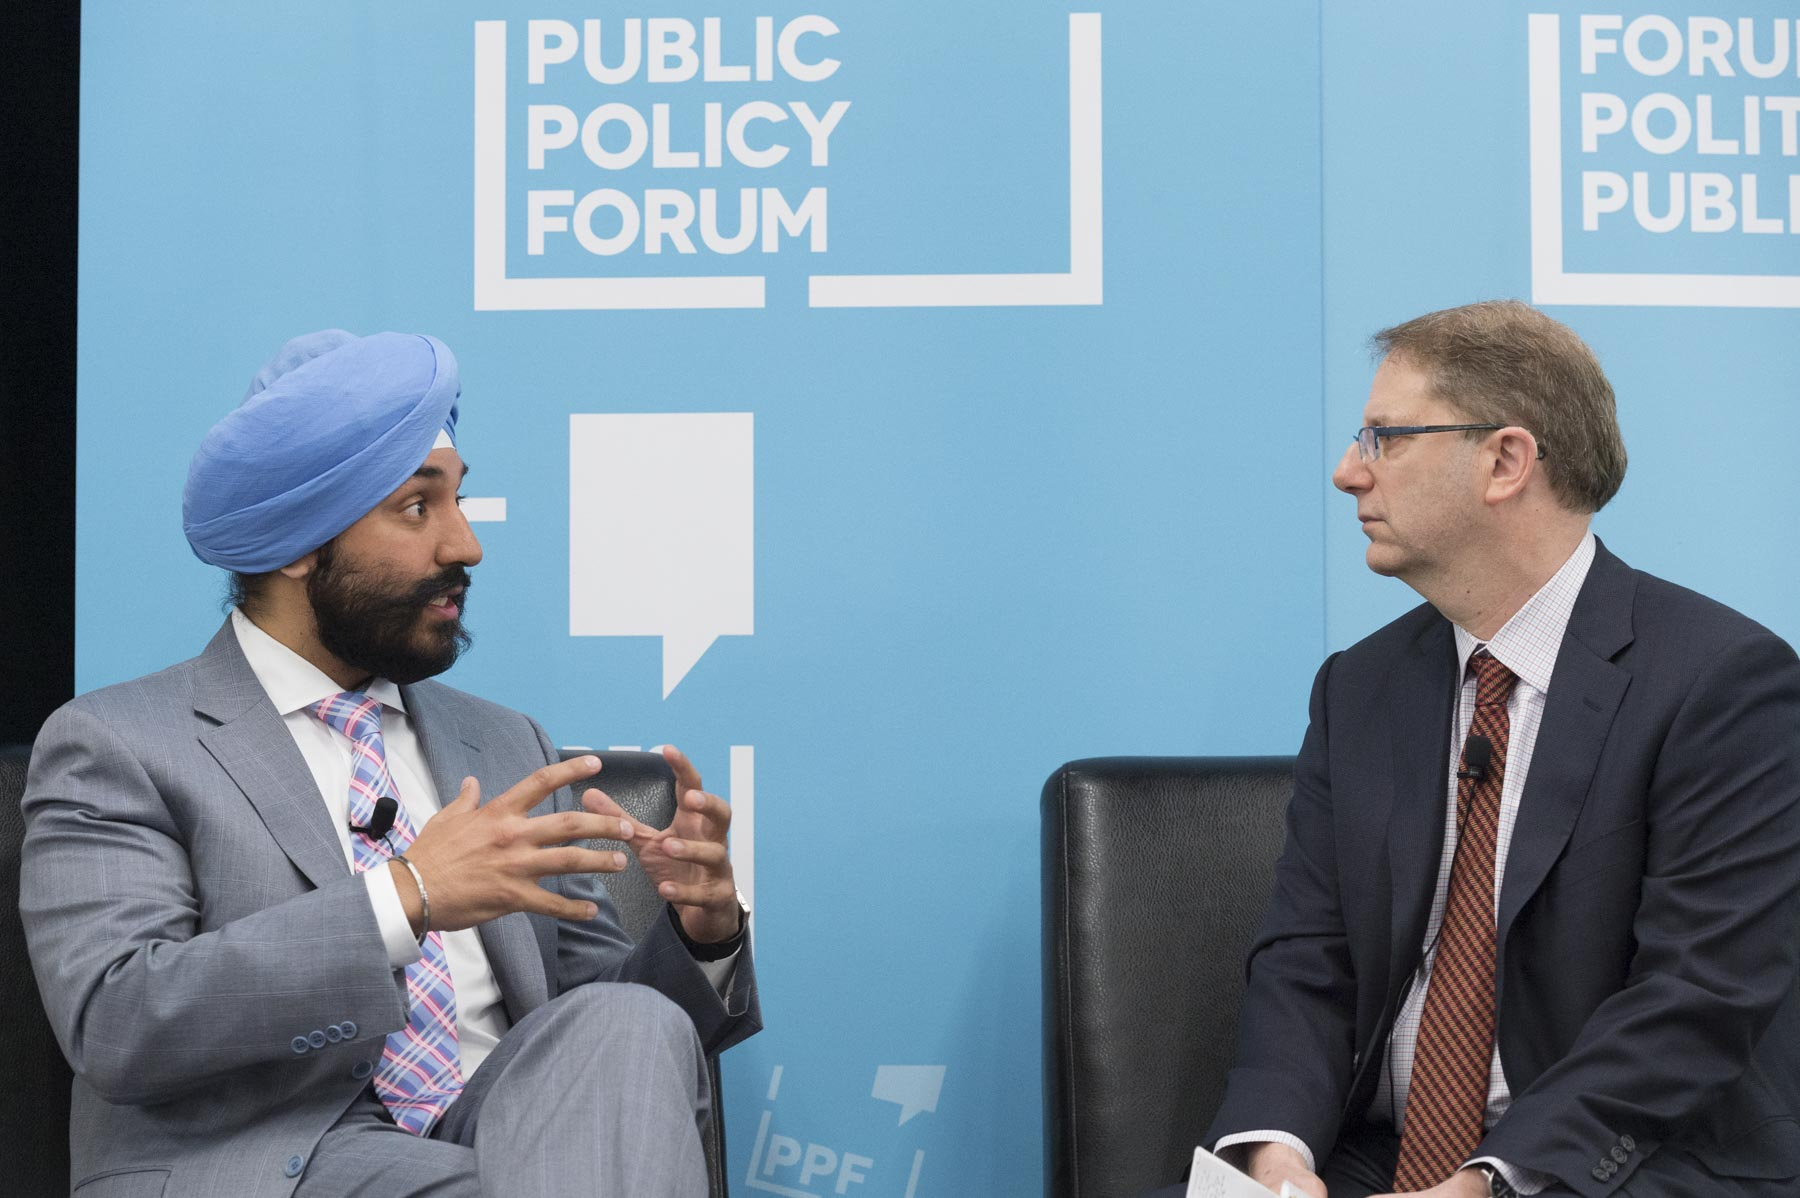 The Honourable Navdeep Bains, Minister of Innovation, Science and Economic Development, also took part in the event.